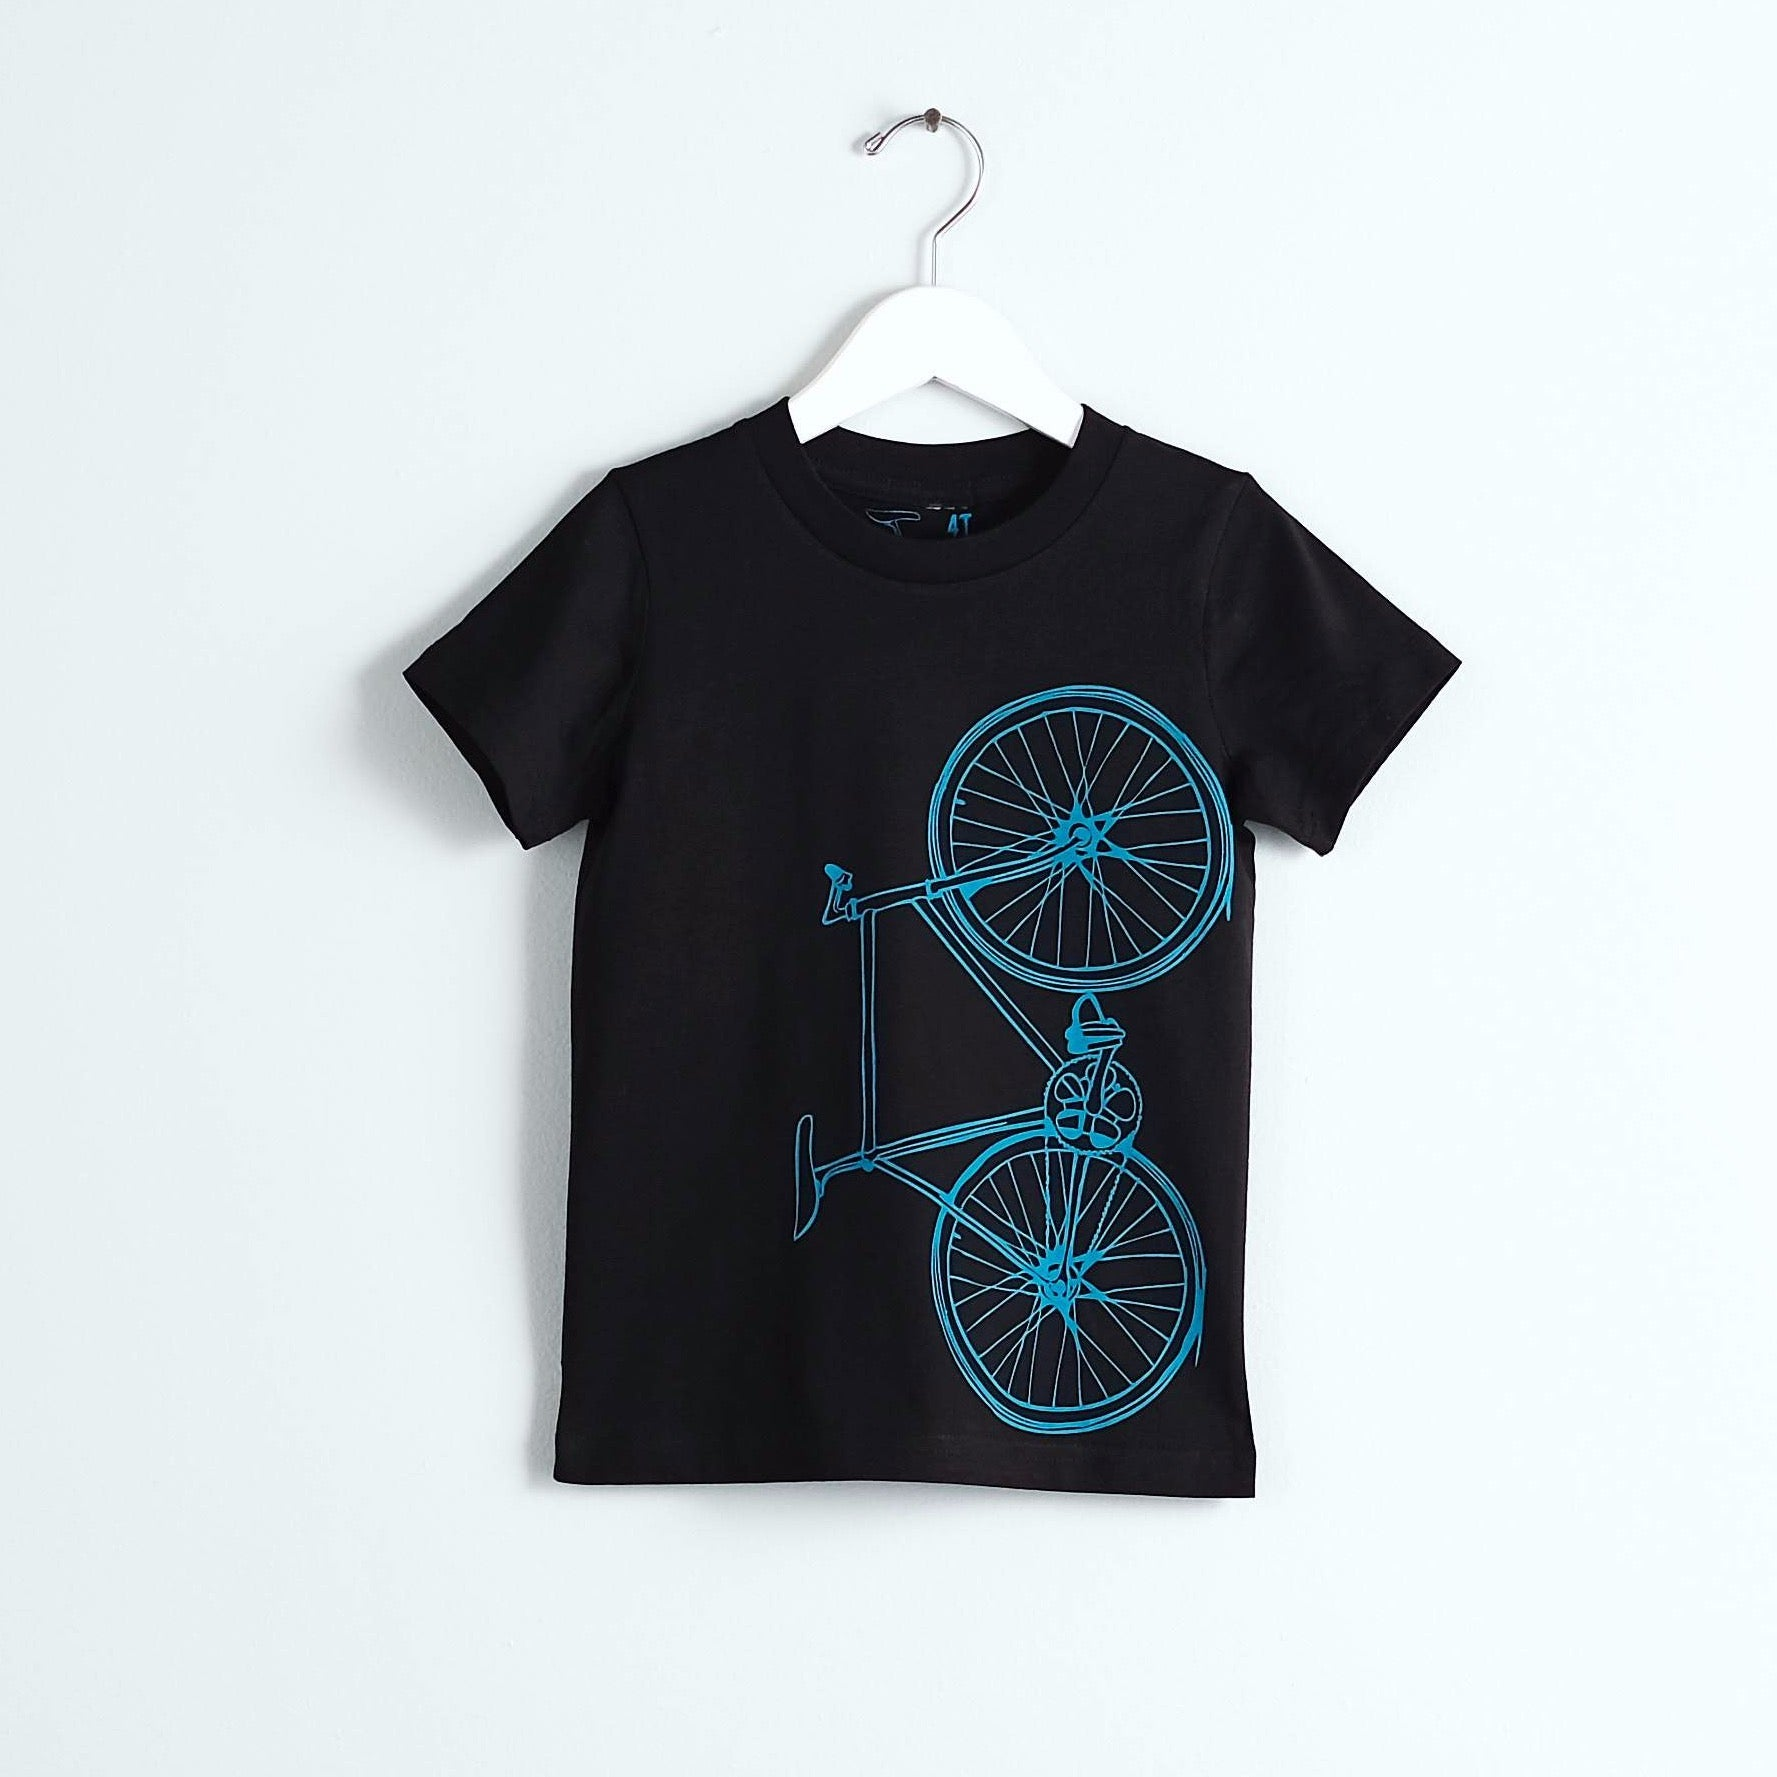 kids bicycle graphic tee teal bike on black cotton t-shirt screen printed